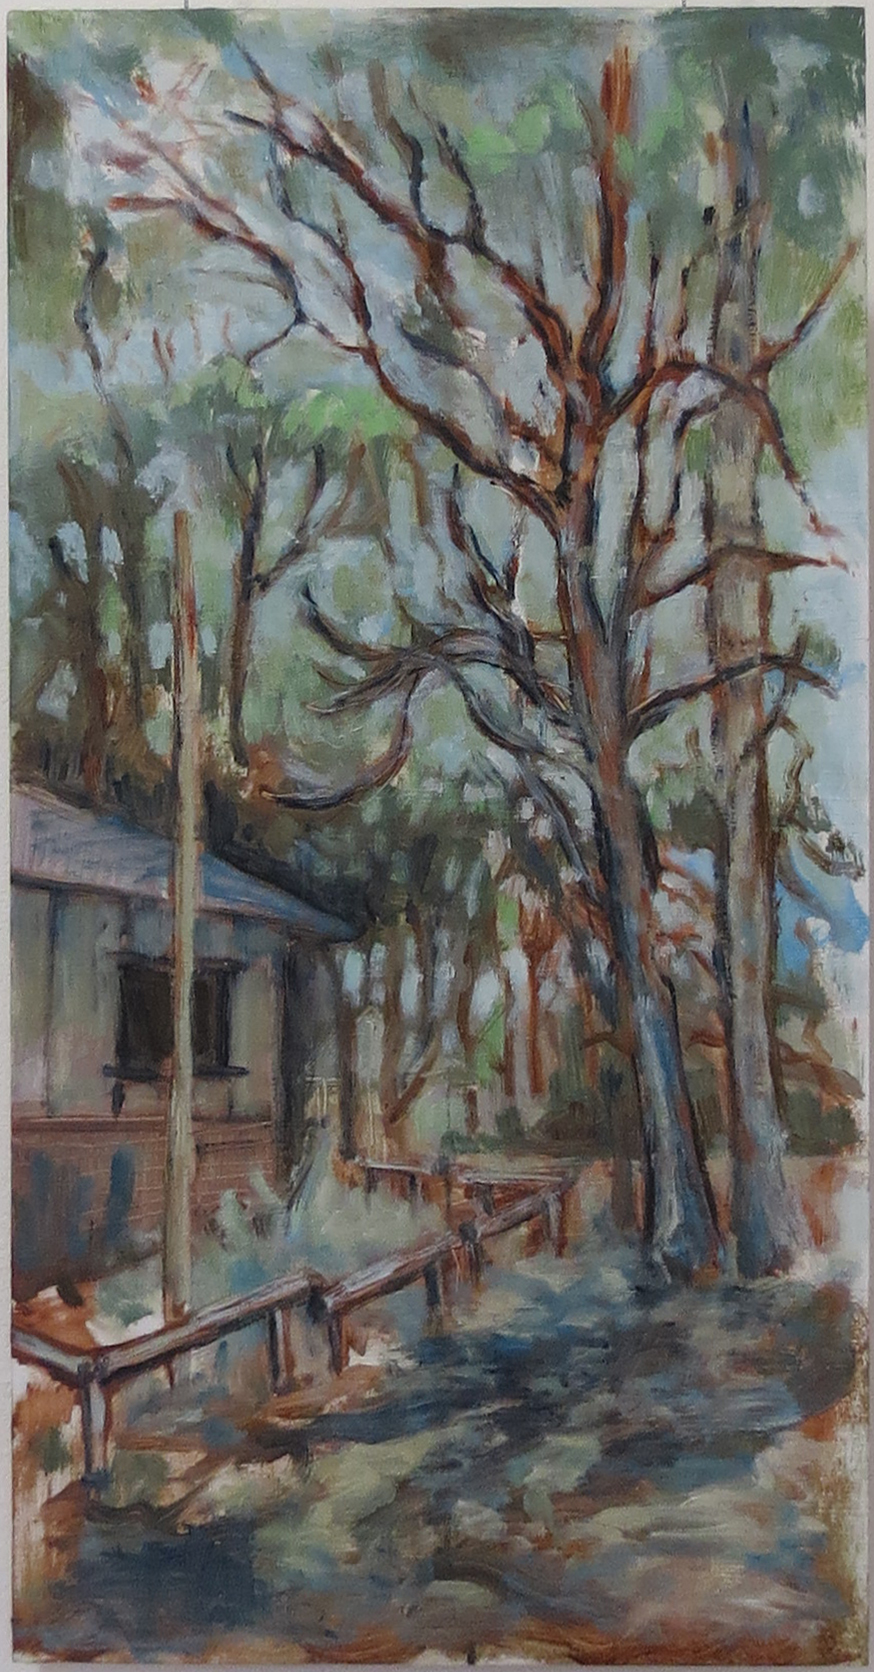 Harrison See, In the Shade (Railway Reserves Heritage Trail), 2018, Oil on board, $410